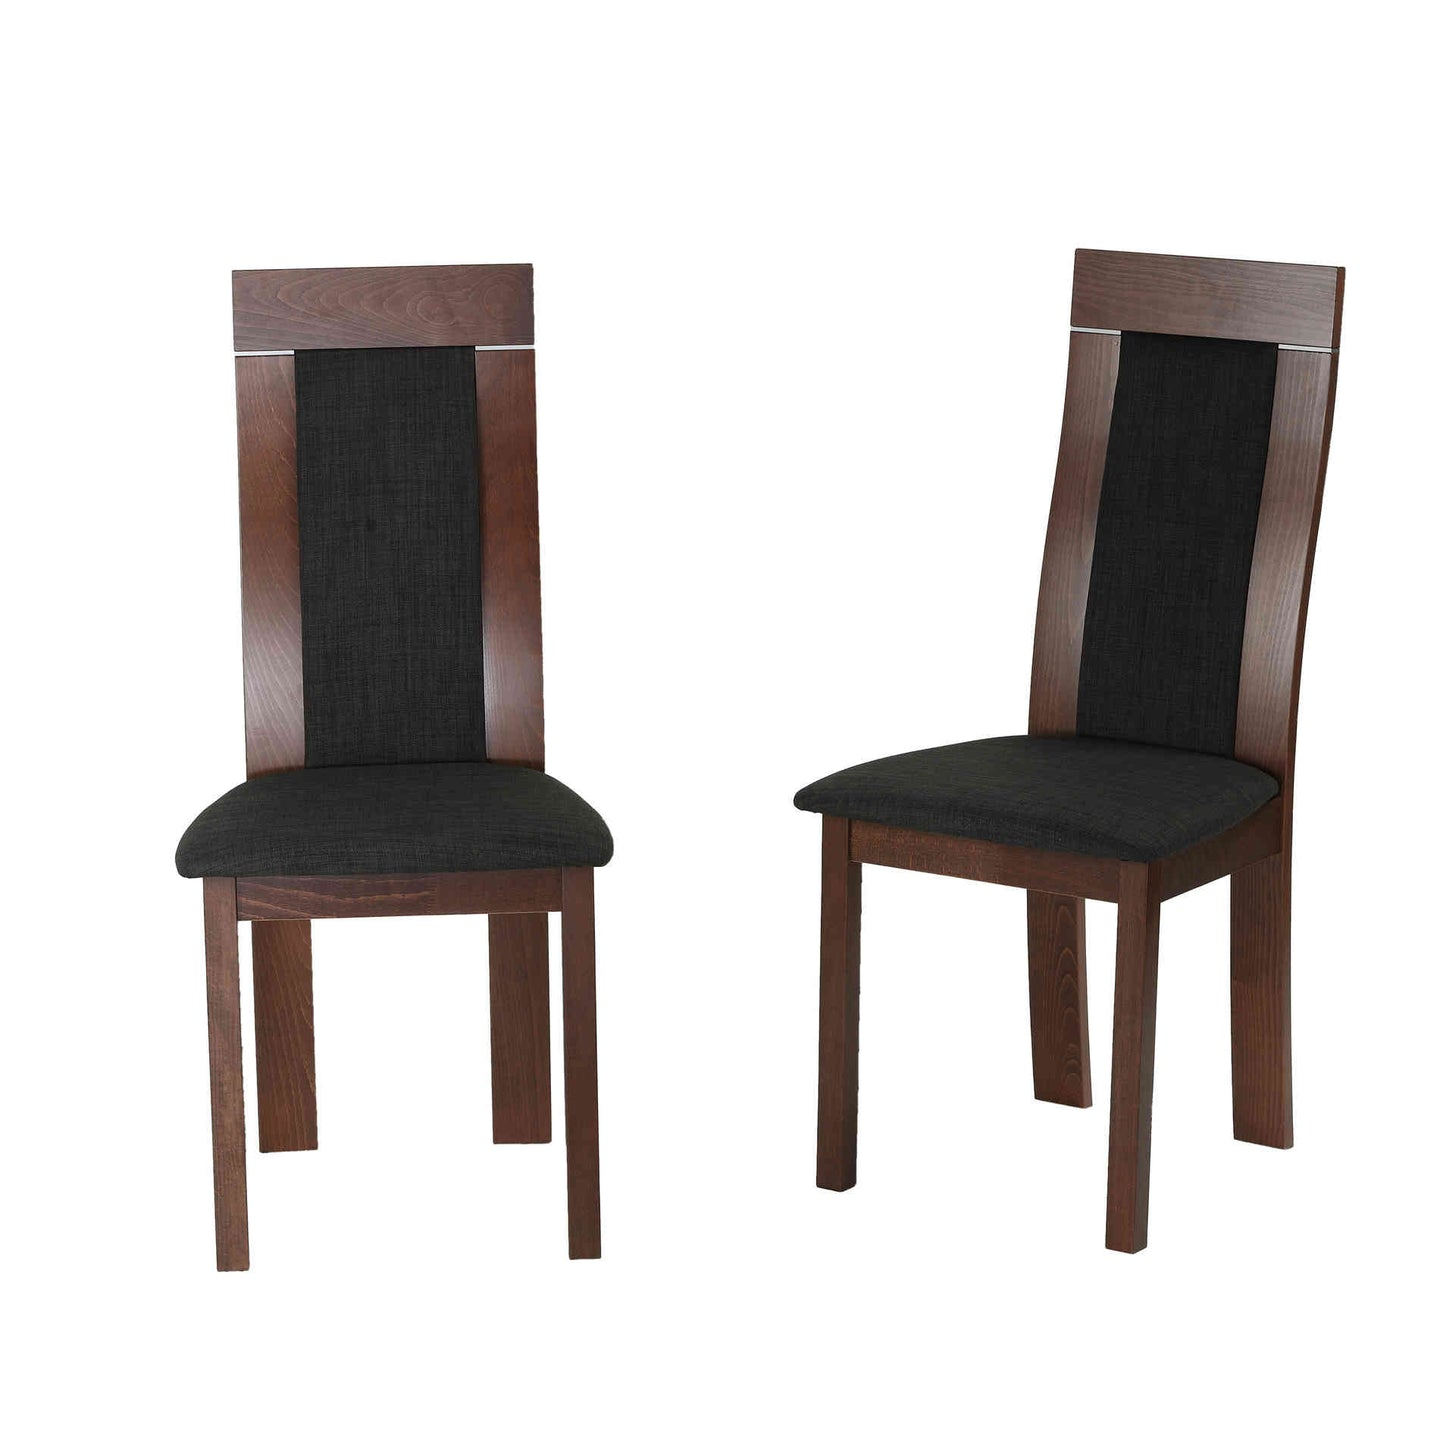 Cortesi Home Tia Dining Chair in Charcoal Fabric, Walnut Finish (Set of 2)